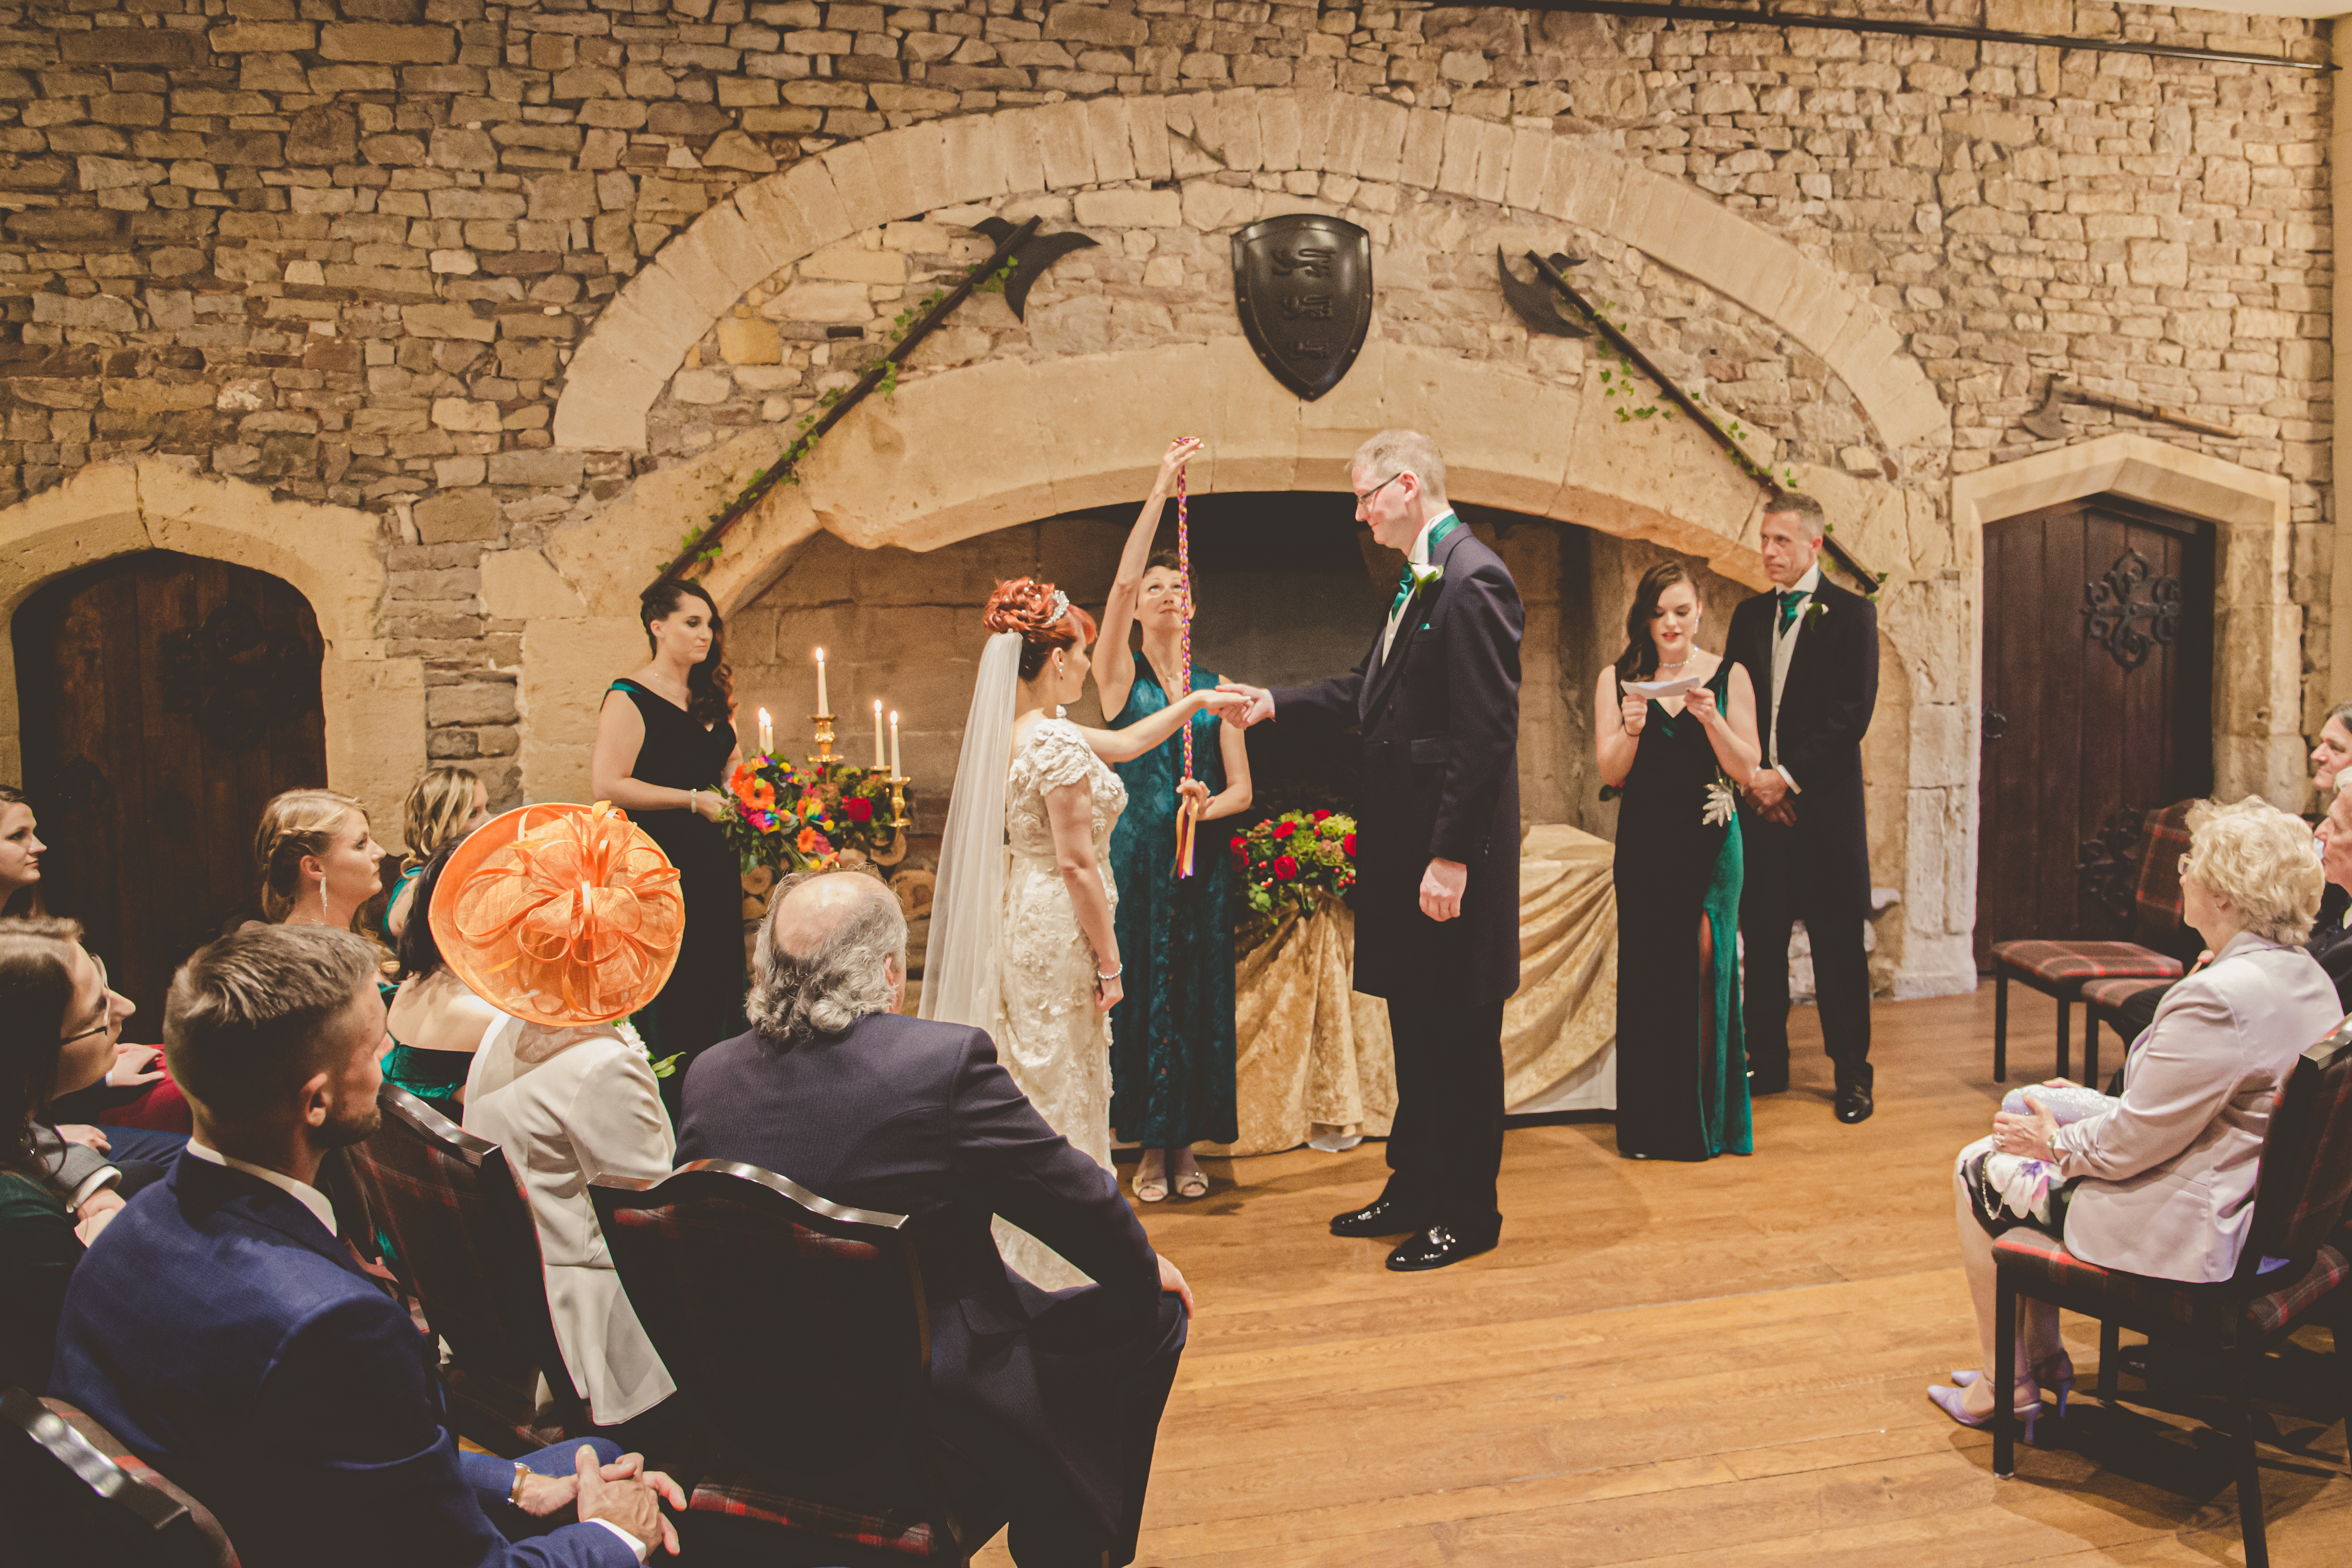 A bride and groom stand with their hands joined while Celebrant Keli Tomlin Holds up the handfasting cord ready to bind their hands. The guests look on. They are standing before a large stone fireplace in Thornbury Castle with shields hanging on the wall.